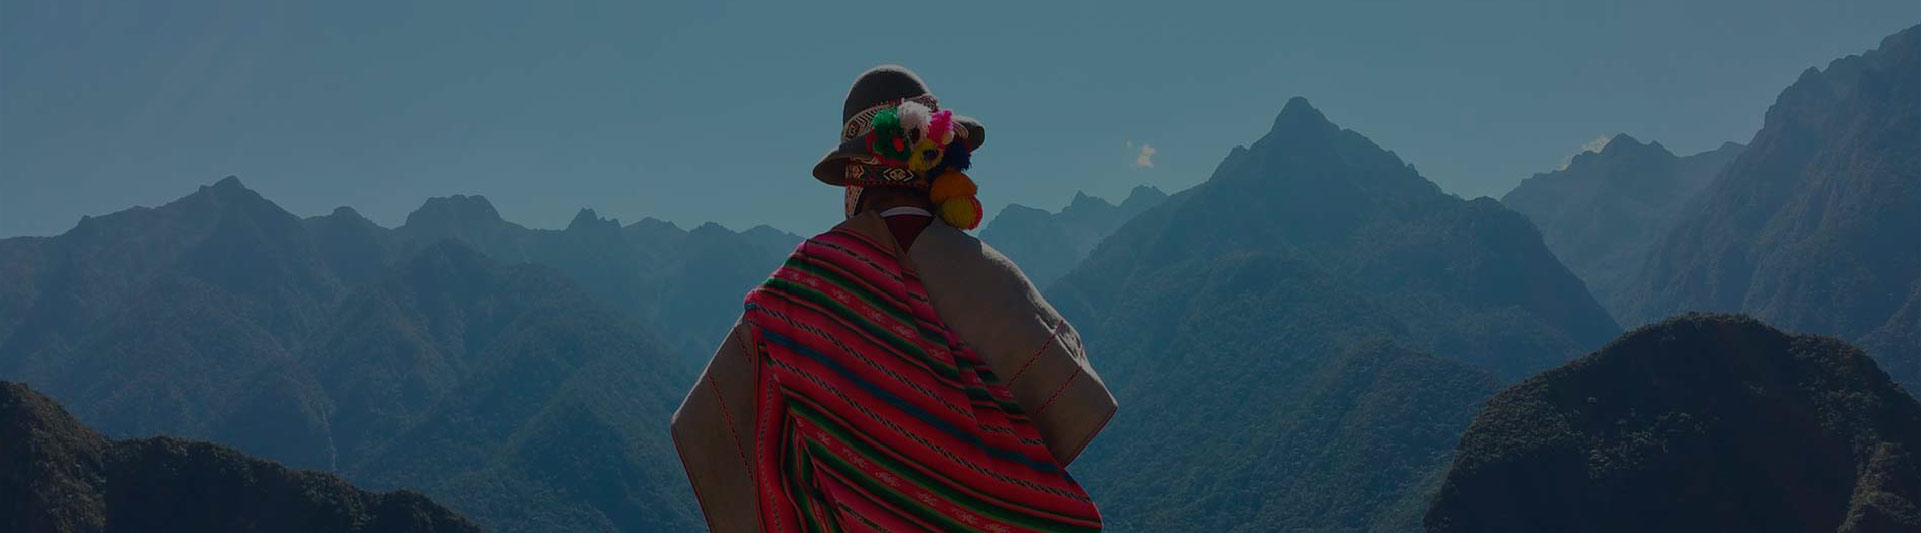 The back of an indigenous man looking at mountains